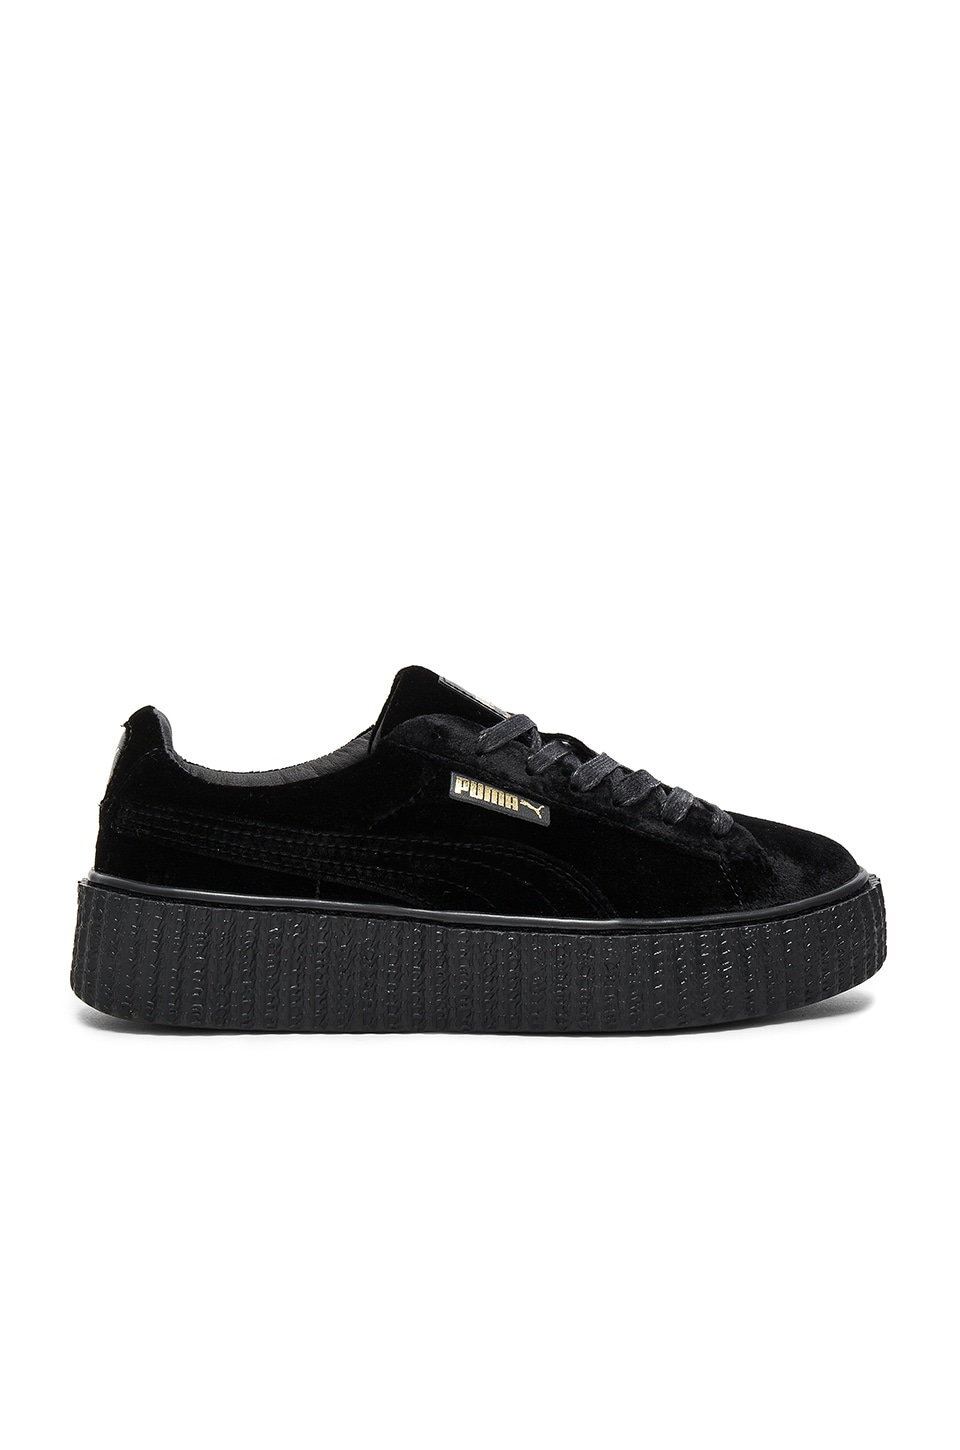 detailed pictures 70786 6bb44 Puma x Rihanna Velvet Creeper in Puma Black | REVOLVE